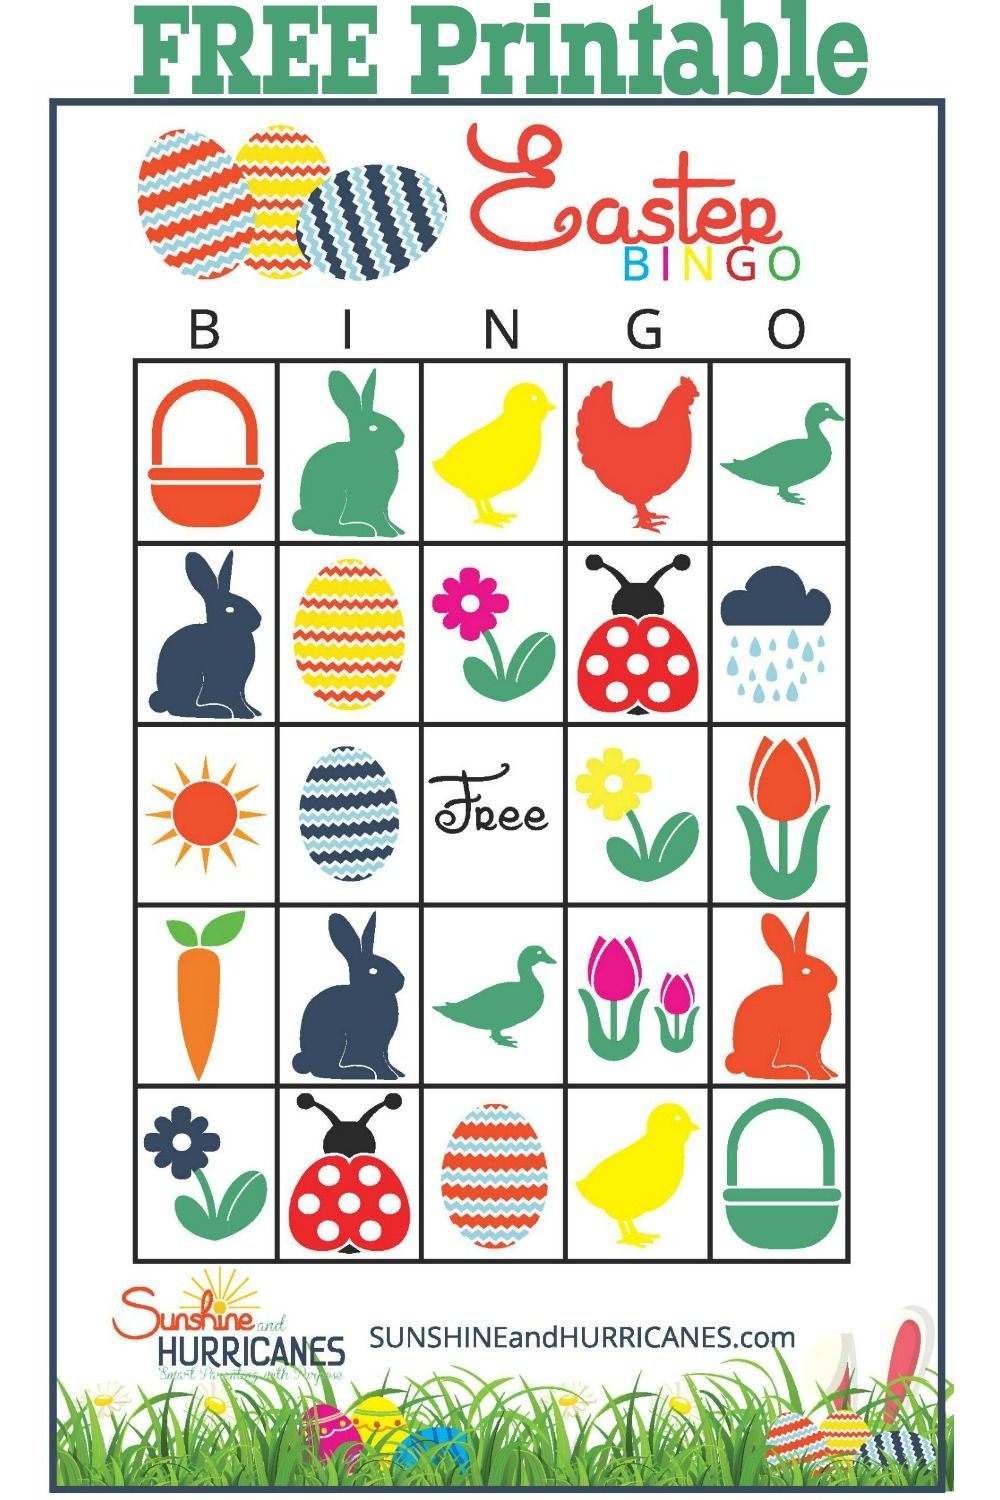 Blue Bunny, Red Basket, Green Duck | Best Of S&h | Easter, Easter - Easter Games For Adults Printable Free